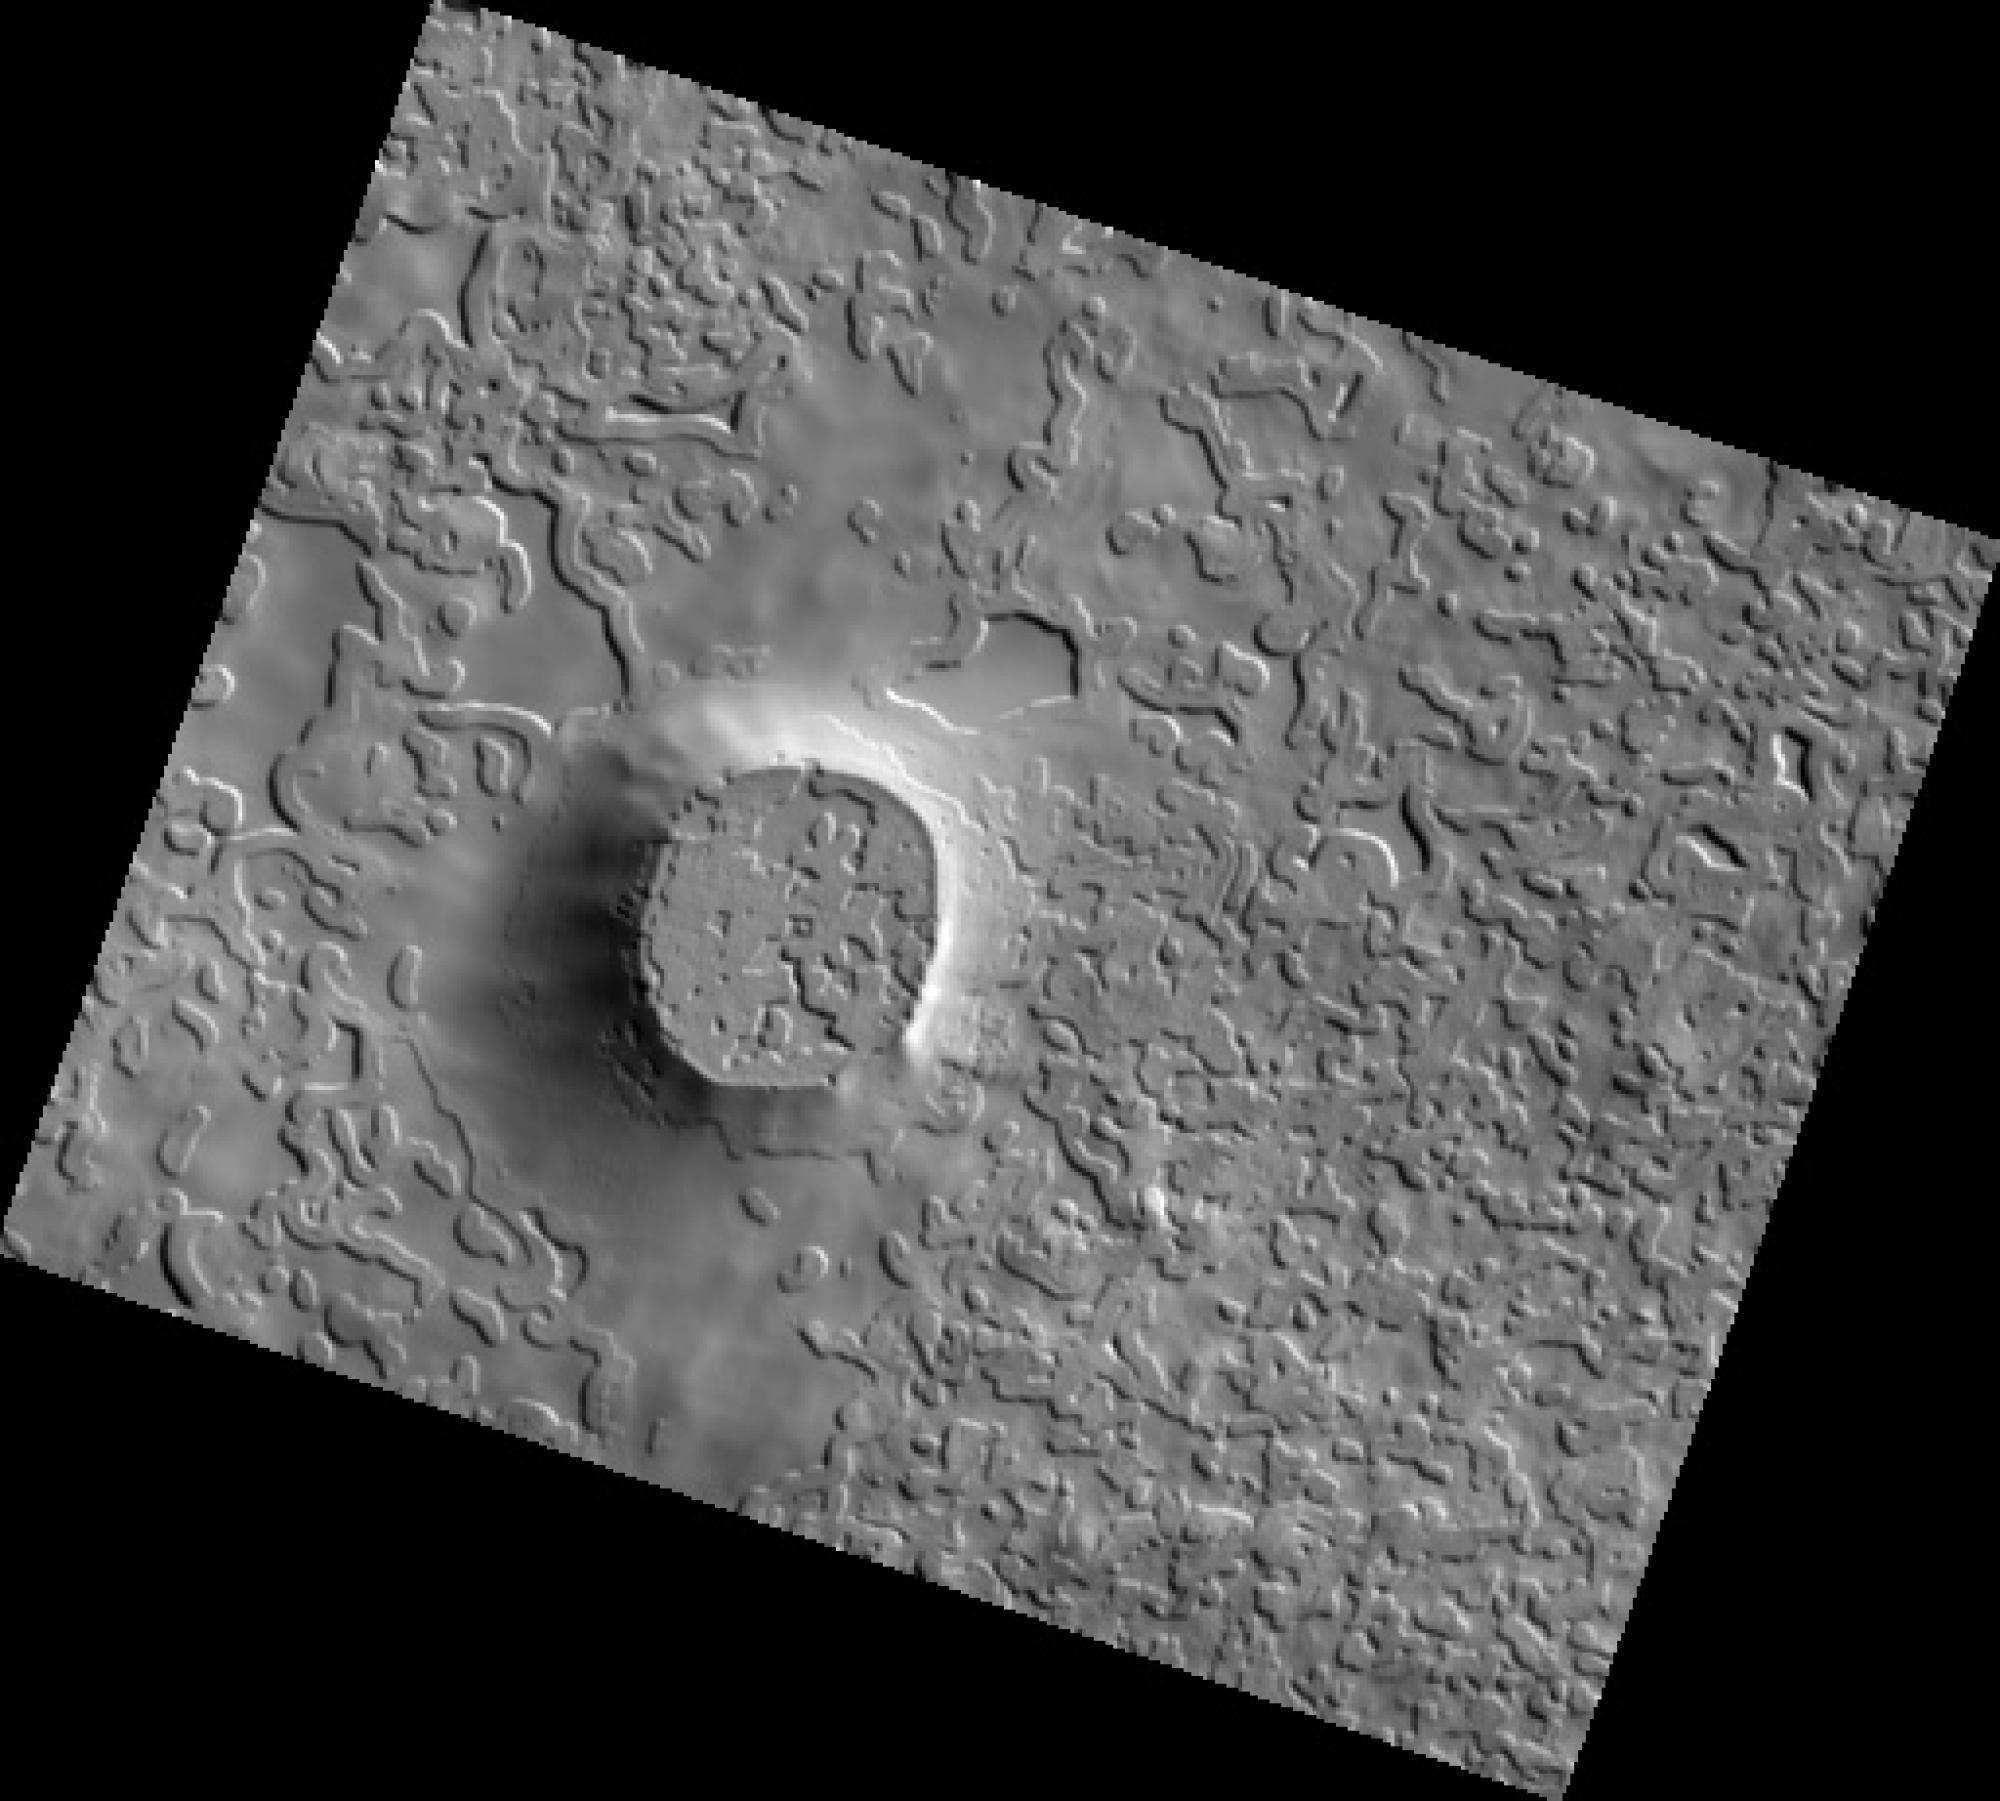 """The High Resolution Imaging Experiment  camera operated at The University of Arizona returned this image  of """"Swiss cheese"""" terrain found near Mars' south pole. The terrain is rich with carbon dioxide ice, which changes the shape of mesas and pits. Carbon"""